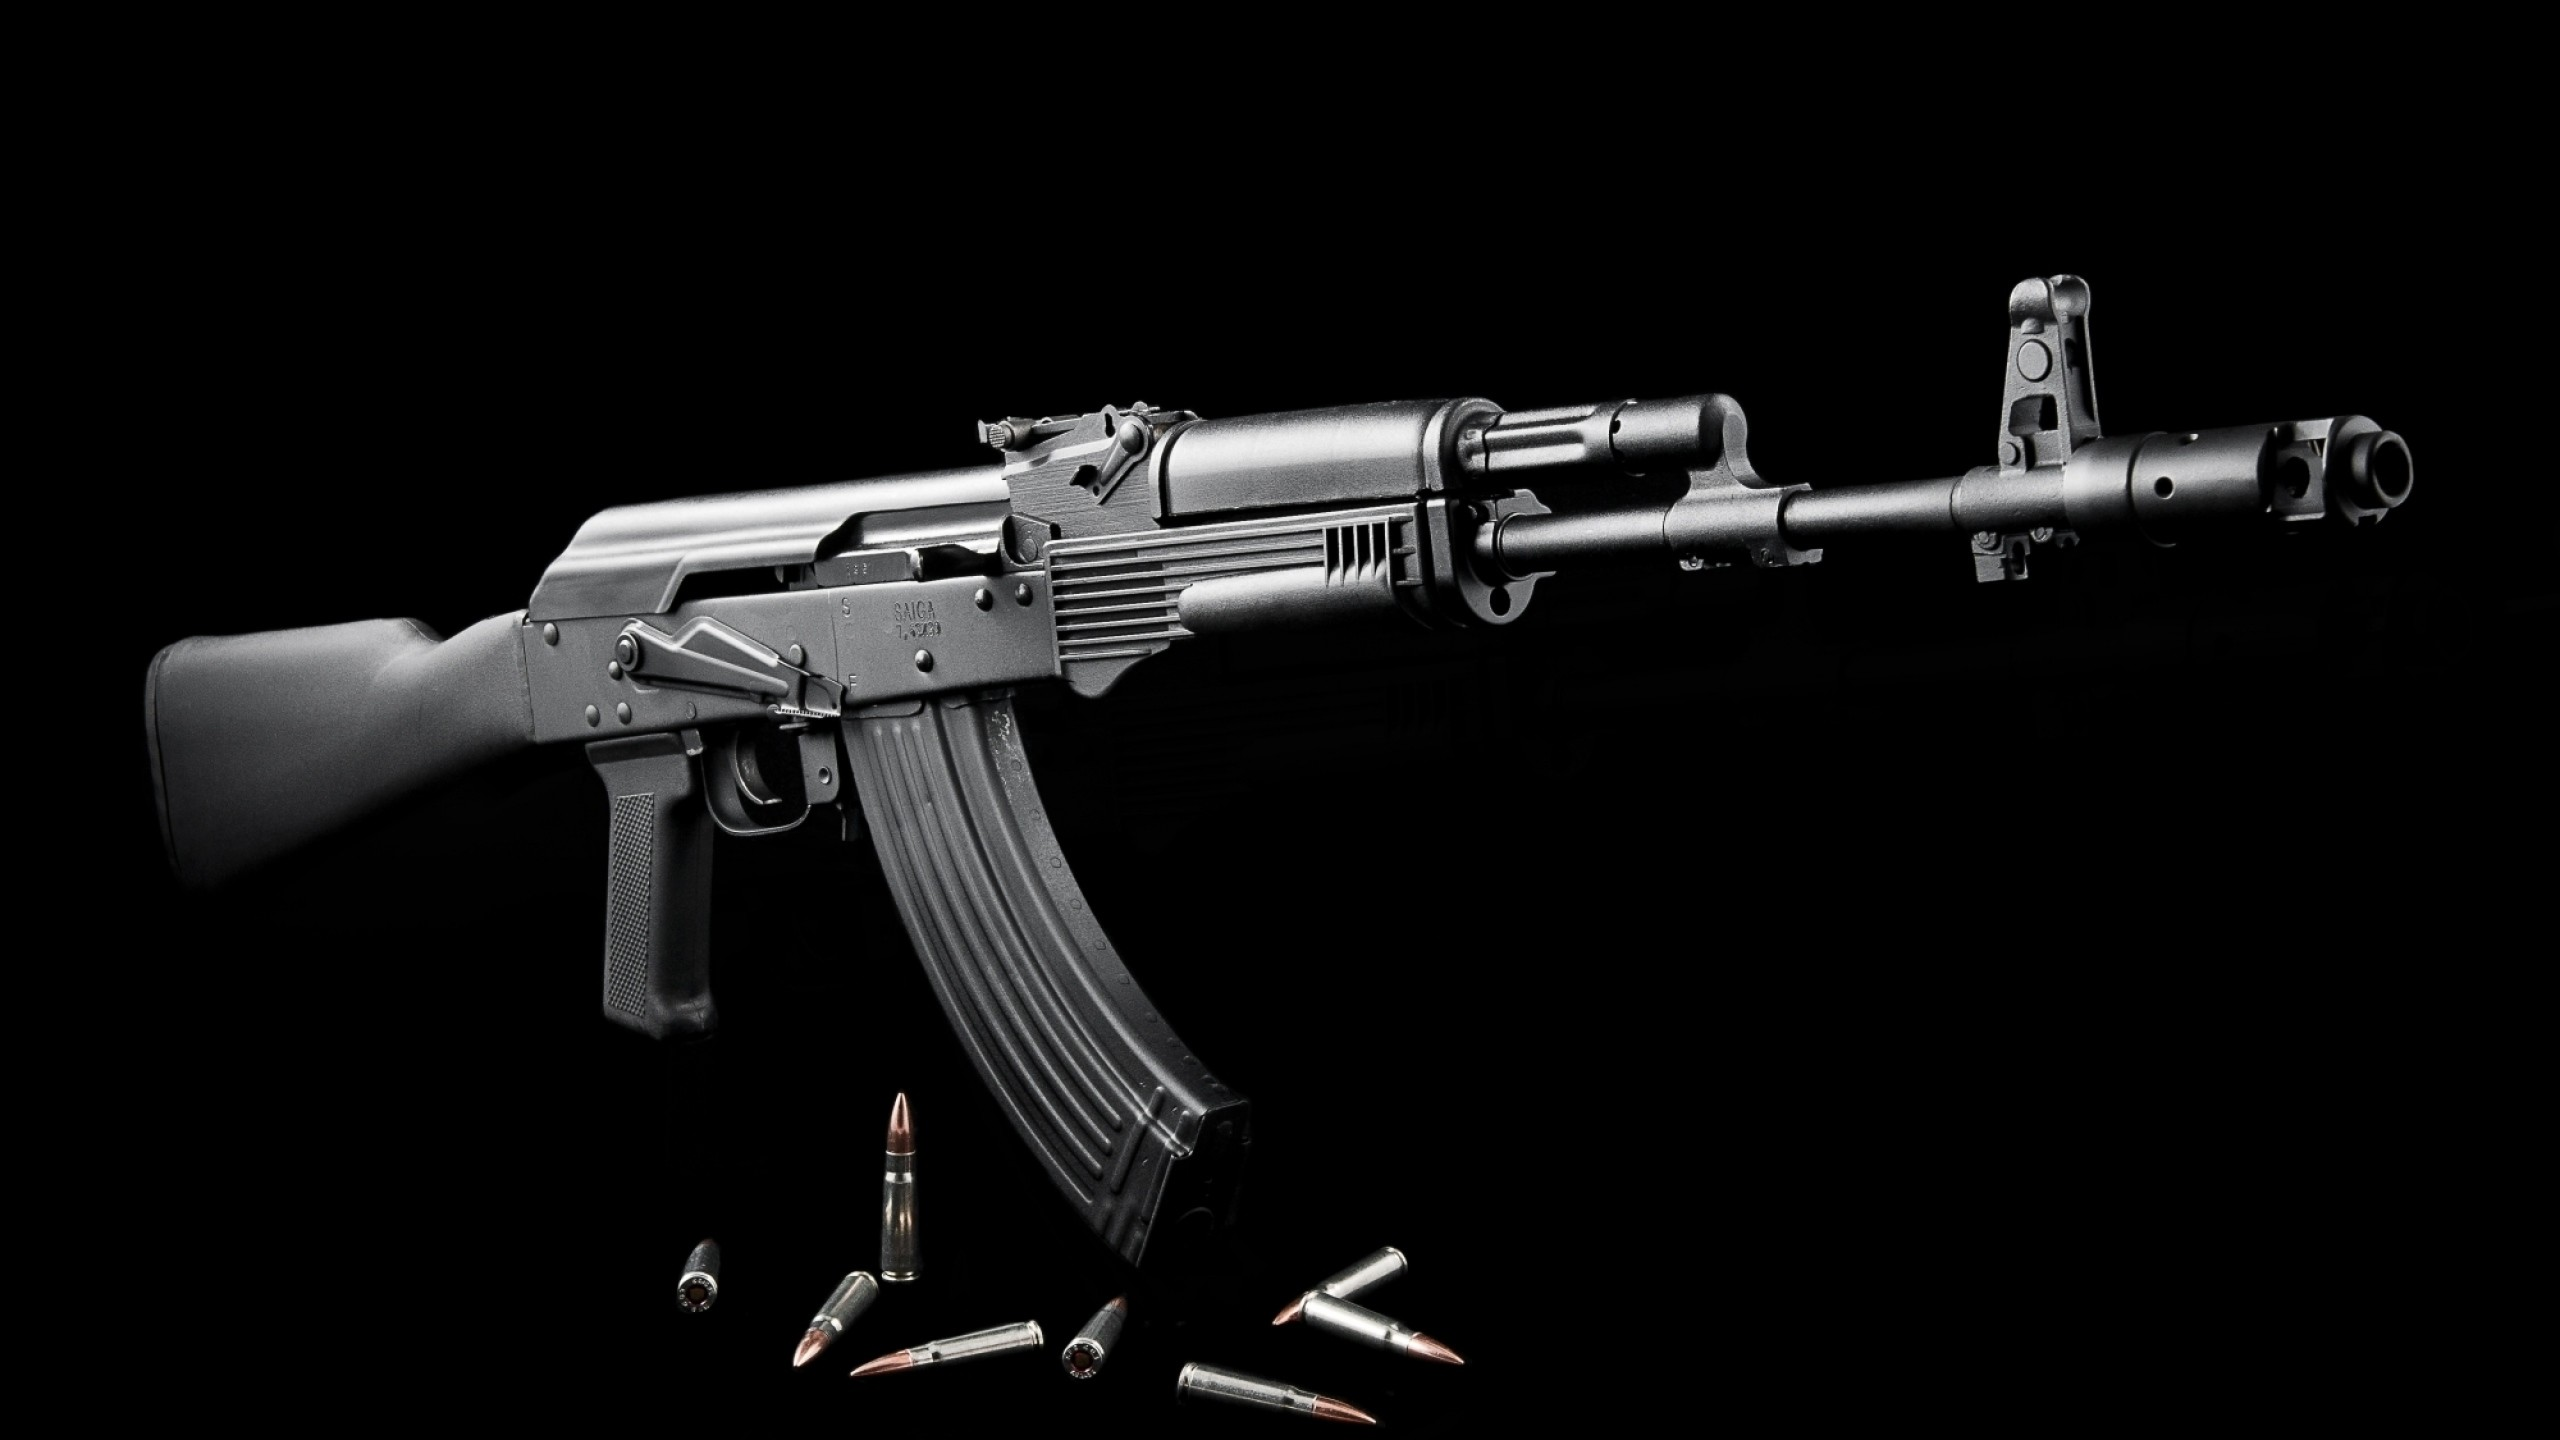 Wallpaper exp 01, civilian version, ak-103, m3, weapons,